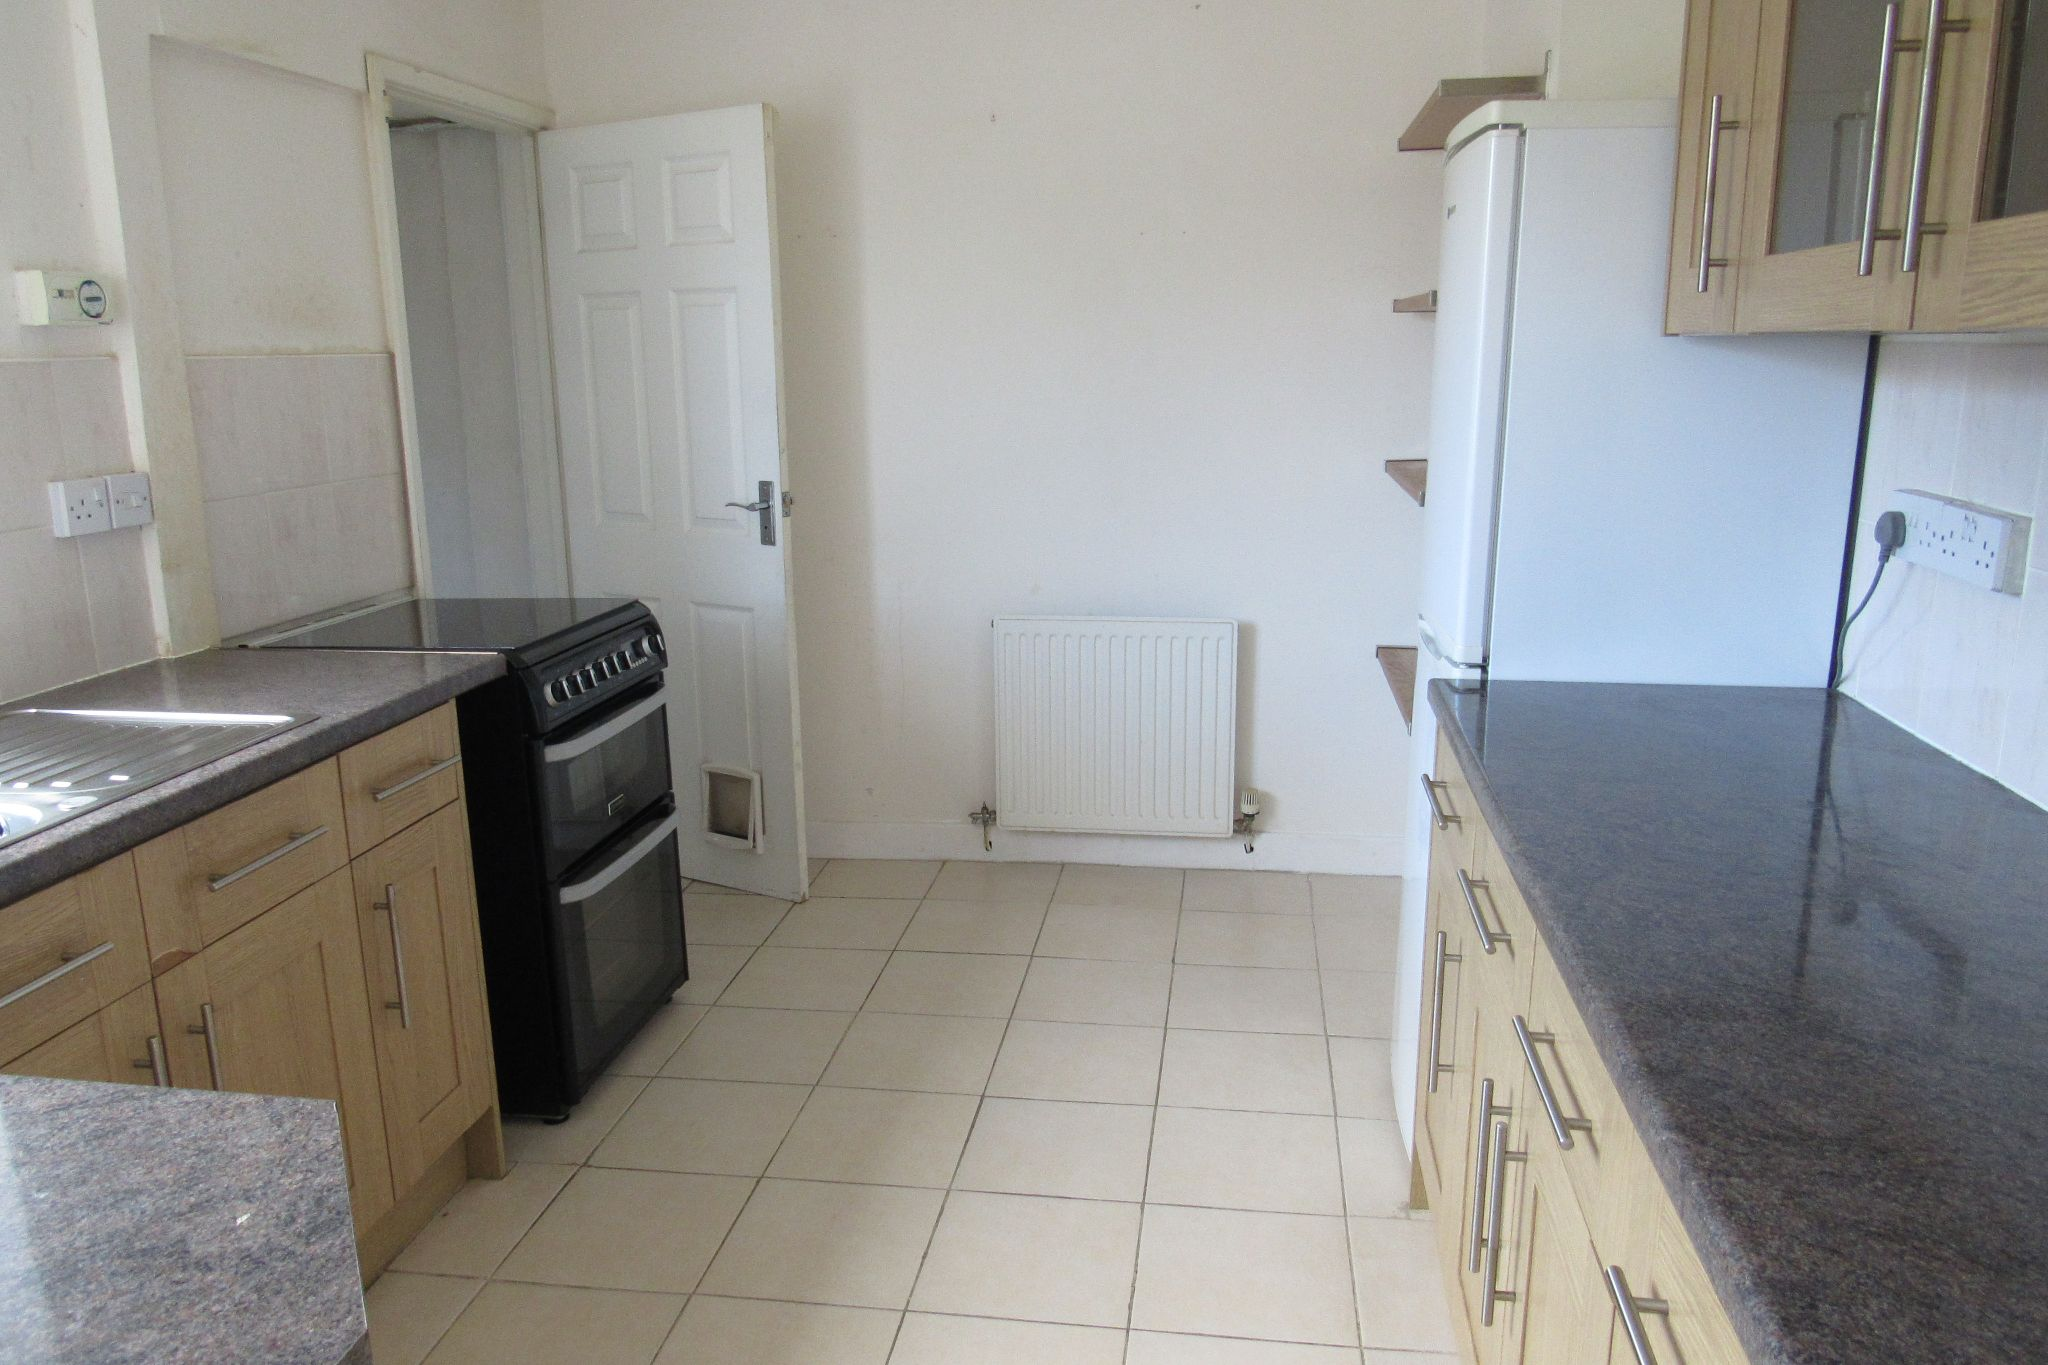 3 bedroom mid terraced house Sale Agreed in Manchester - Photograph 6.